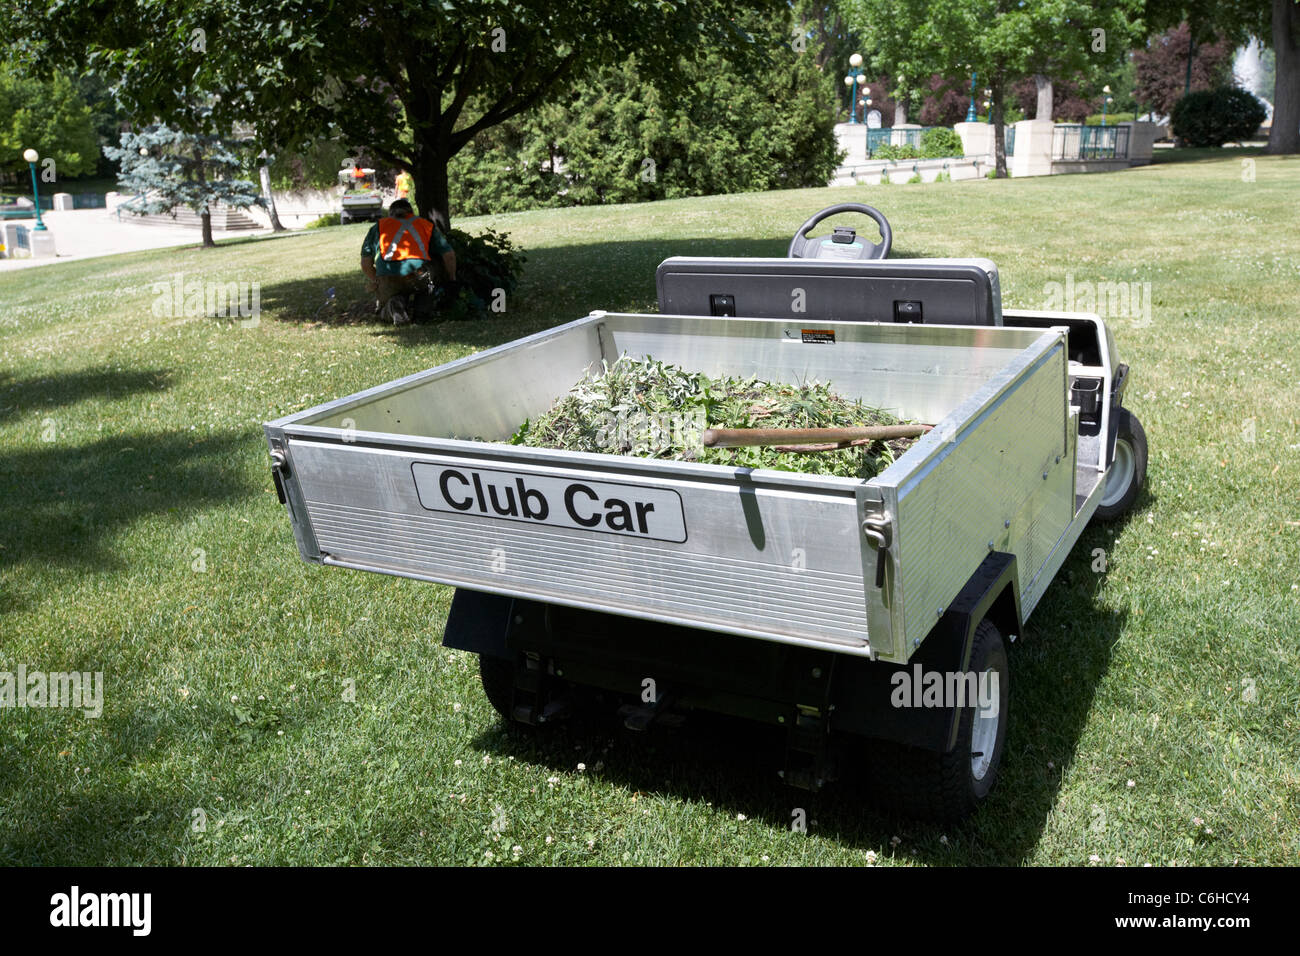 club car utility vehicle being used by gardeners in the grounds of the manitoba legistative building winnipeg manitoba - Stock Image